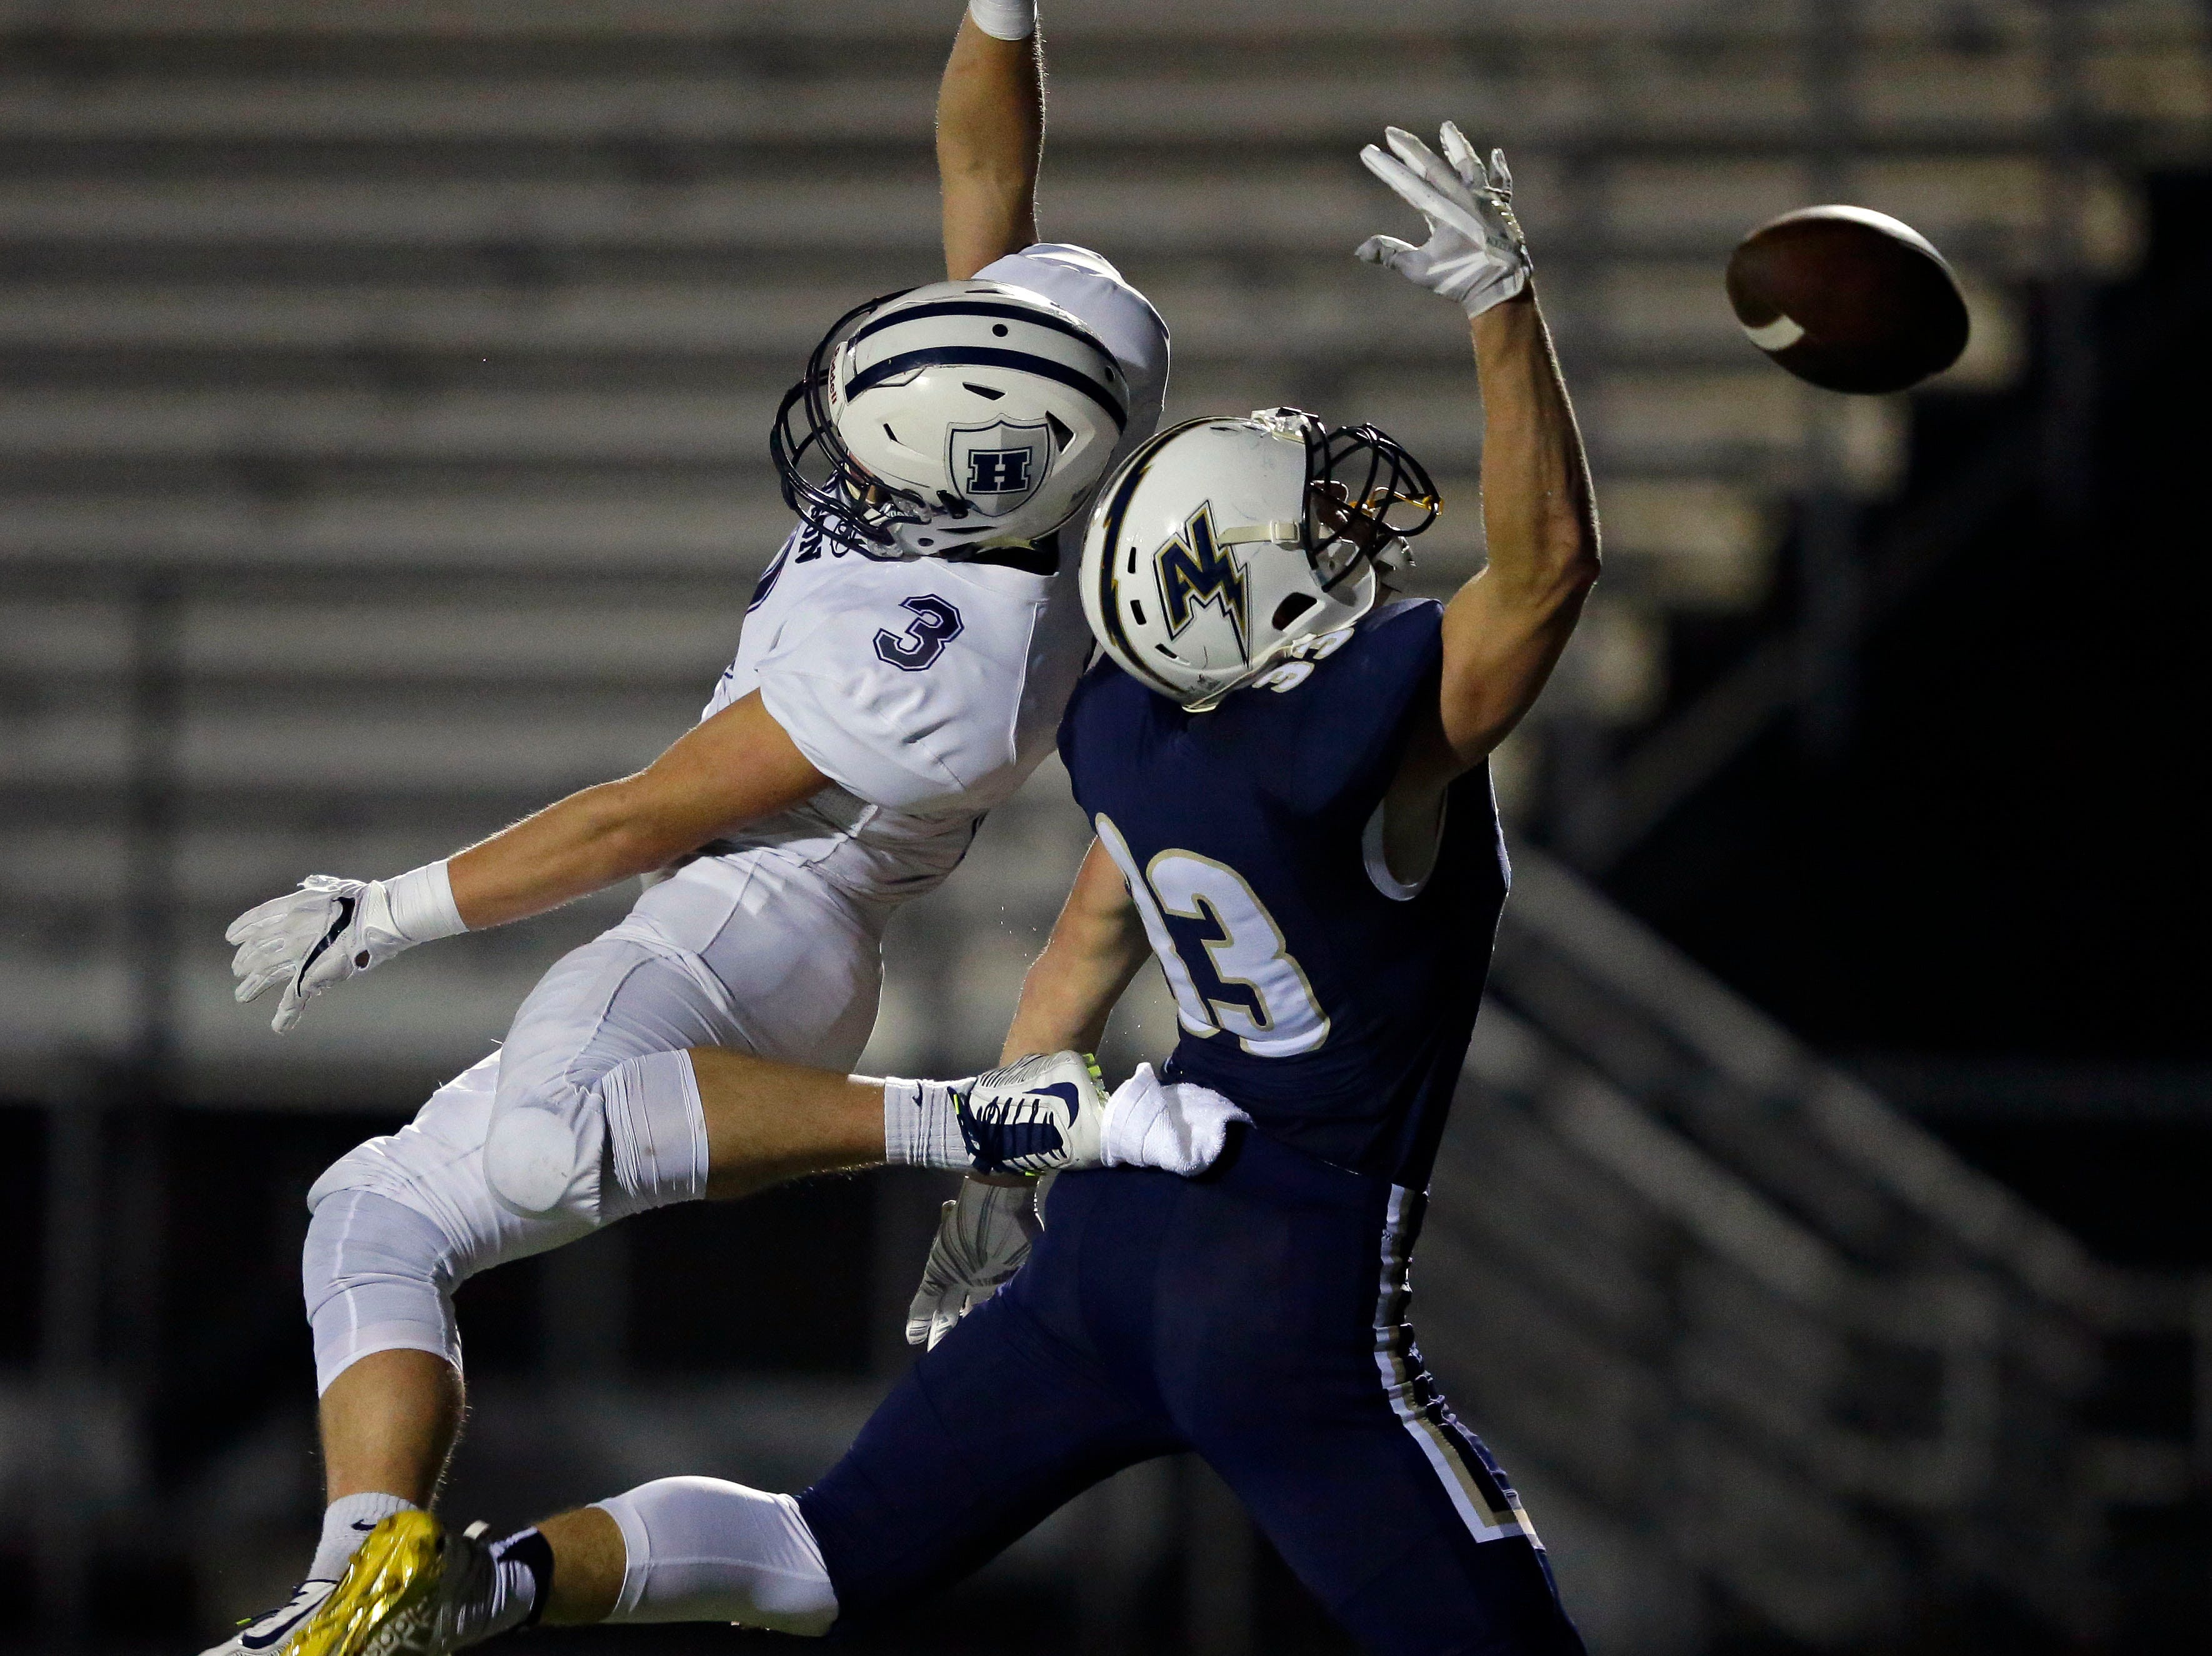 Neither Ben Karls of Hudson or Devin Blom of Appleton North come up with a catch in a WIAA Division 1 football playoff game Friday, October 19, 2018, at Paul Engen Field in Appleton, Wis.